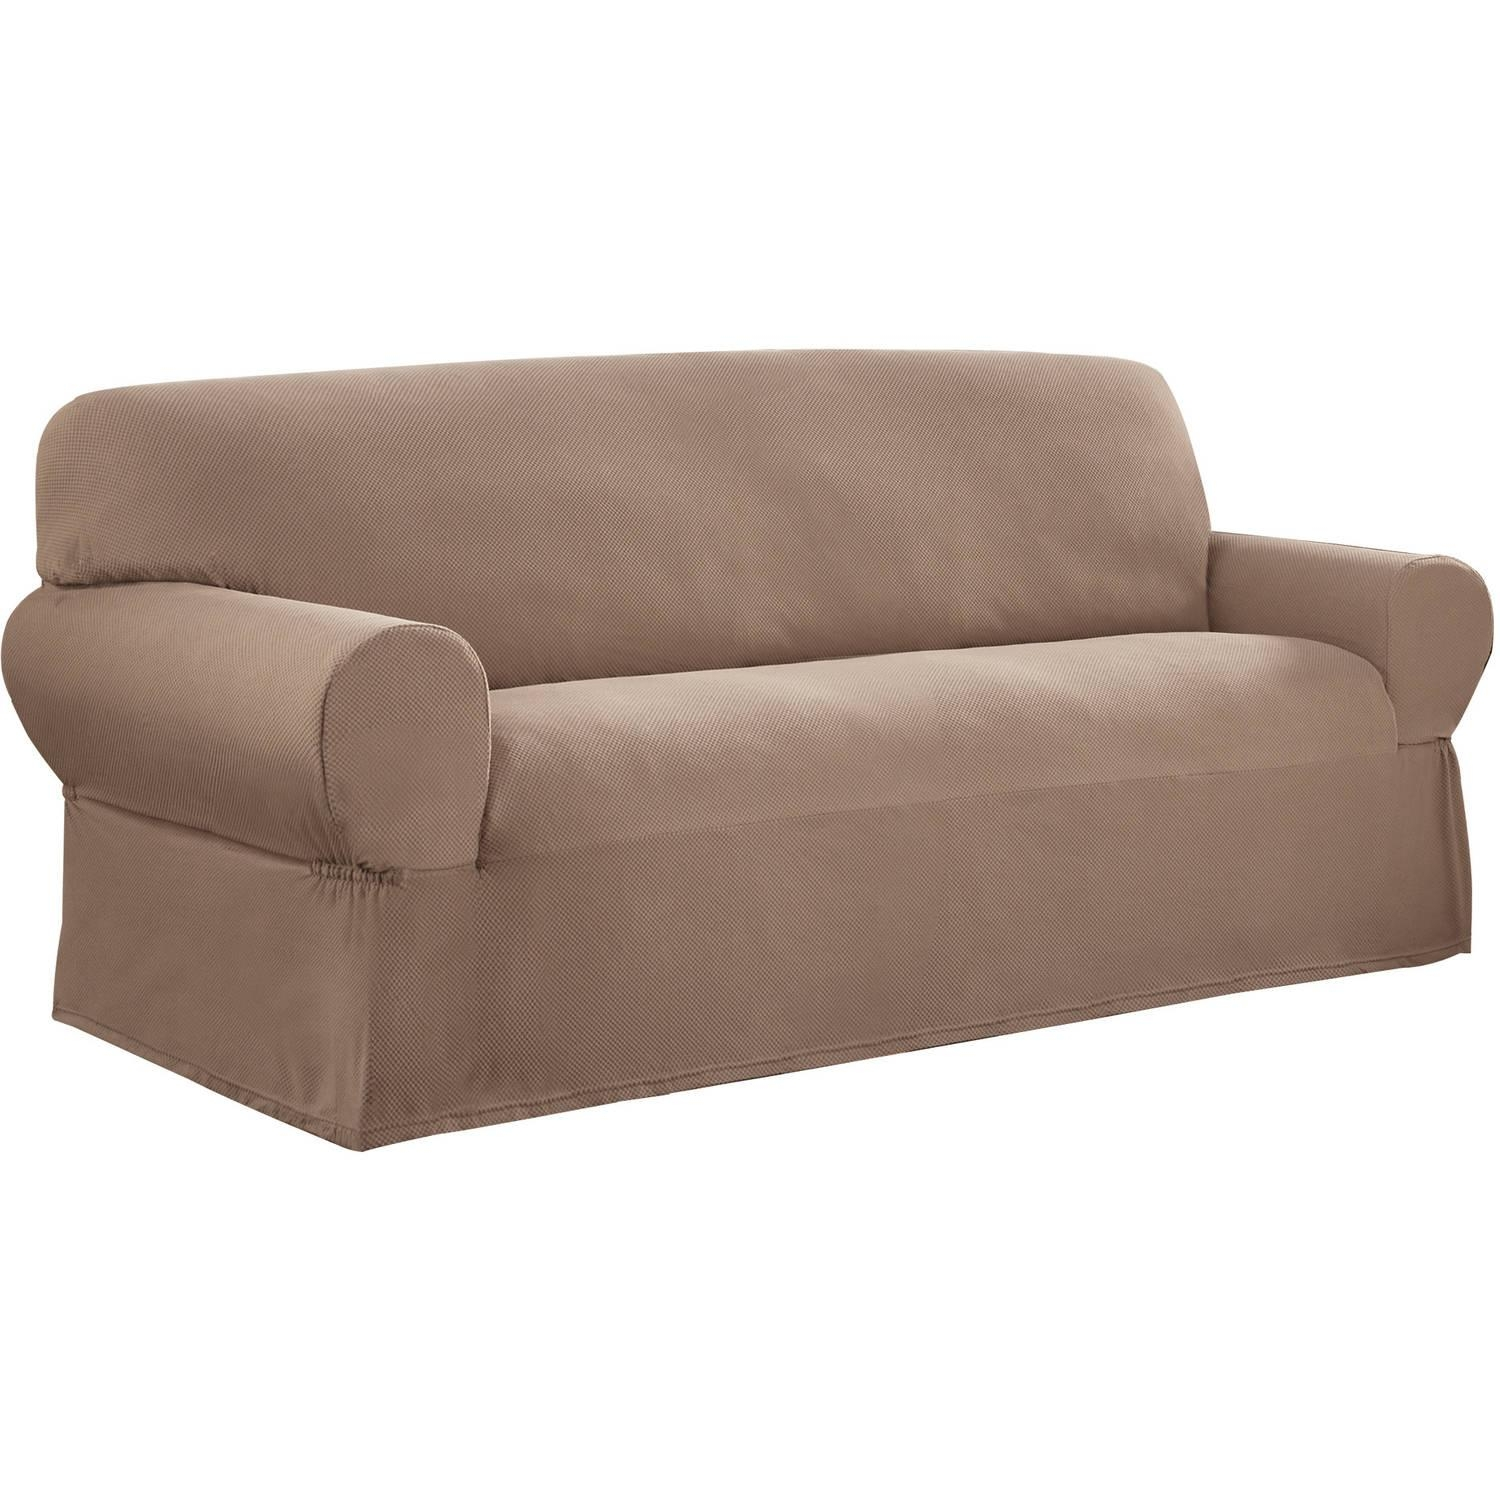 Mainstays 1 Piece Stretch Fabric Sofa Slipcover – Walmart Throughout Slipcovers For Sofas And Chairs (View 13 of 20)